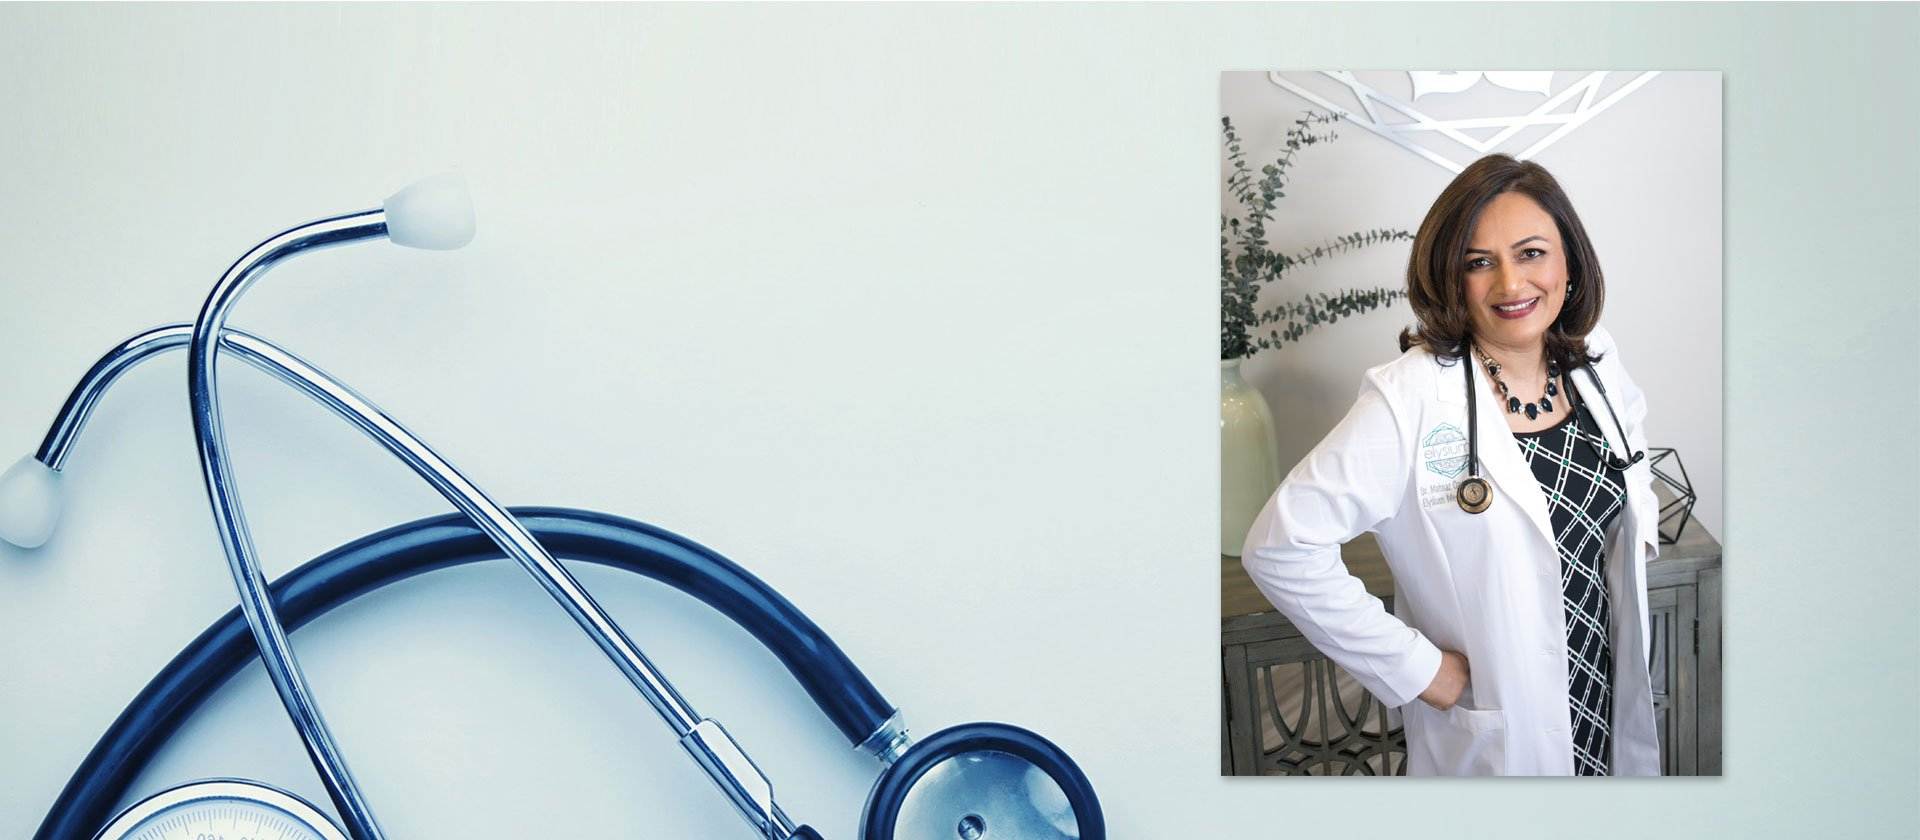 Dr. Qayyum - Elysium Medical Group